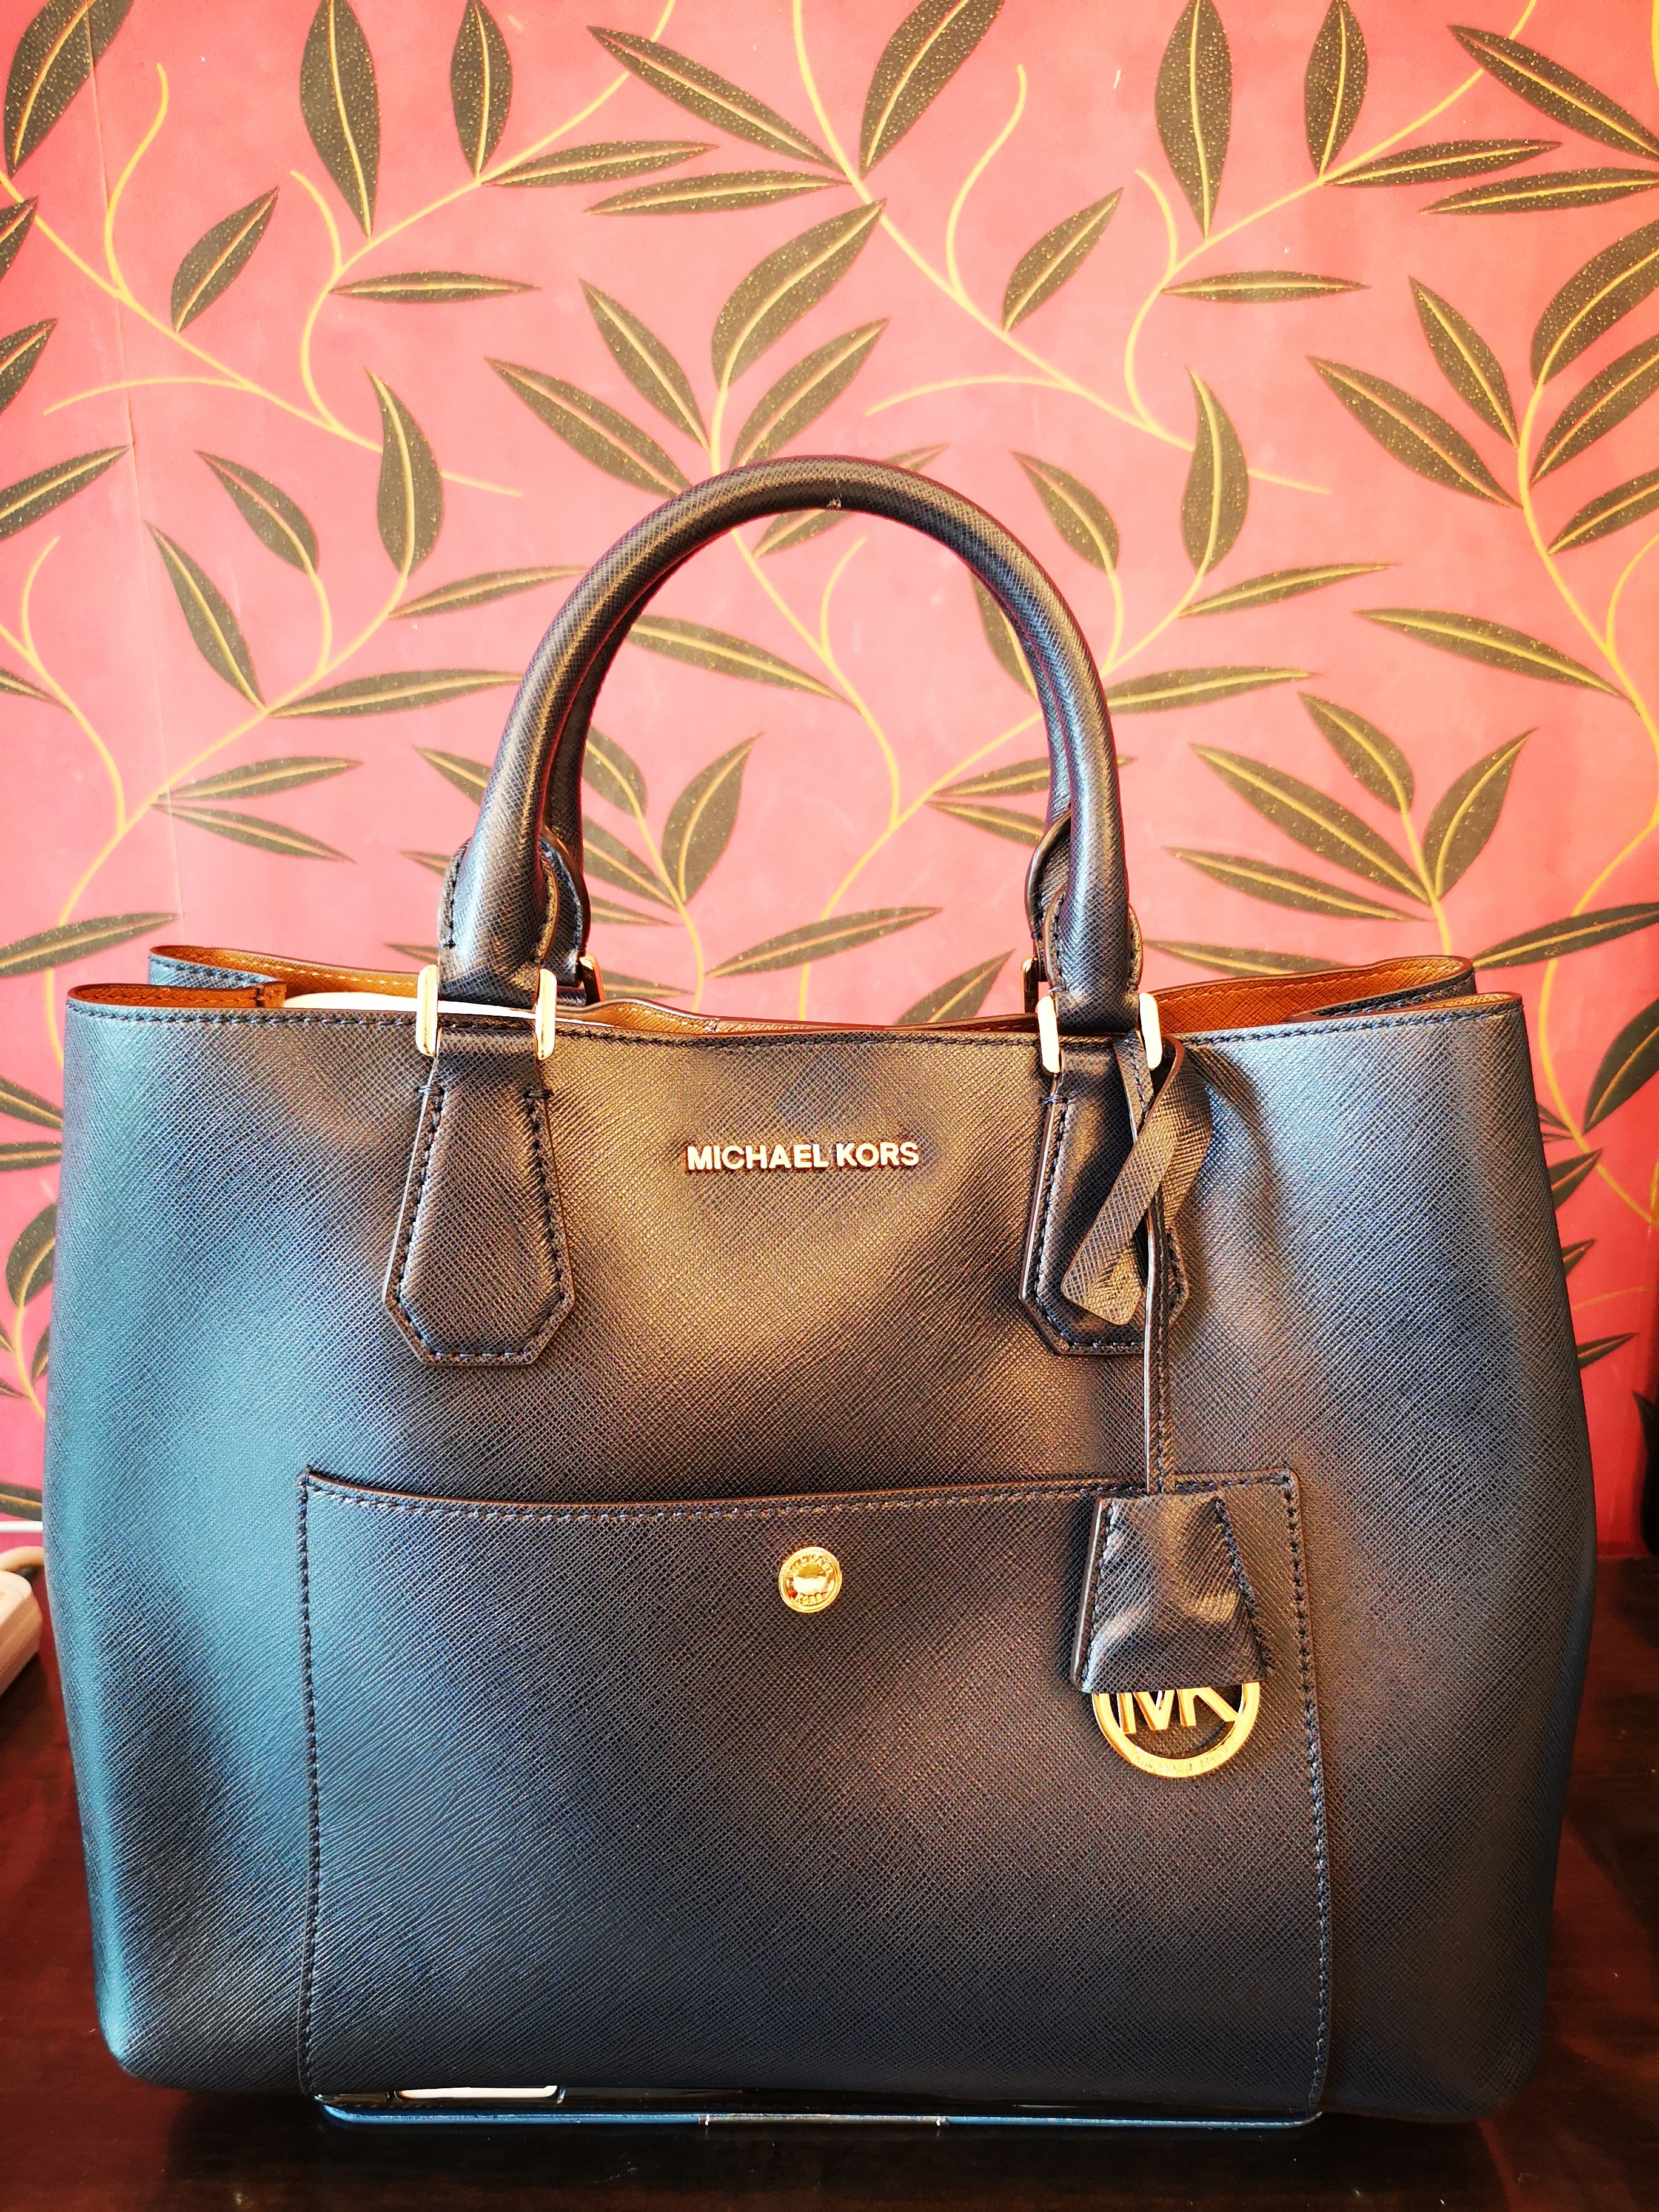 059880a6cc3a Micheal Kors Satchel Bag (medium) Condition : 10/10 Color/Material : Navy  Blue Saffiano Leather Brand new, never used before. Bought from Micheal Kors  ...